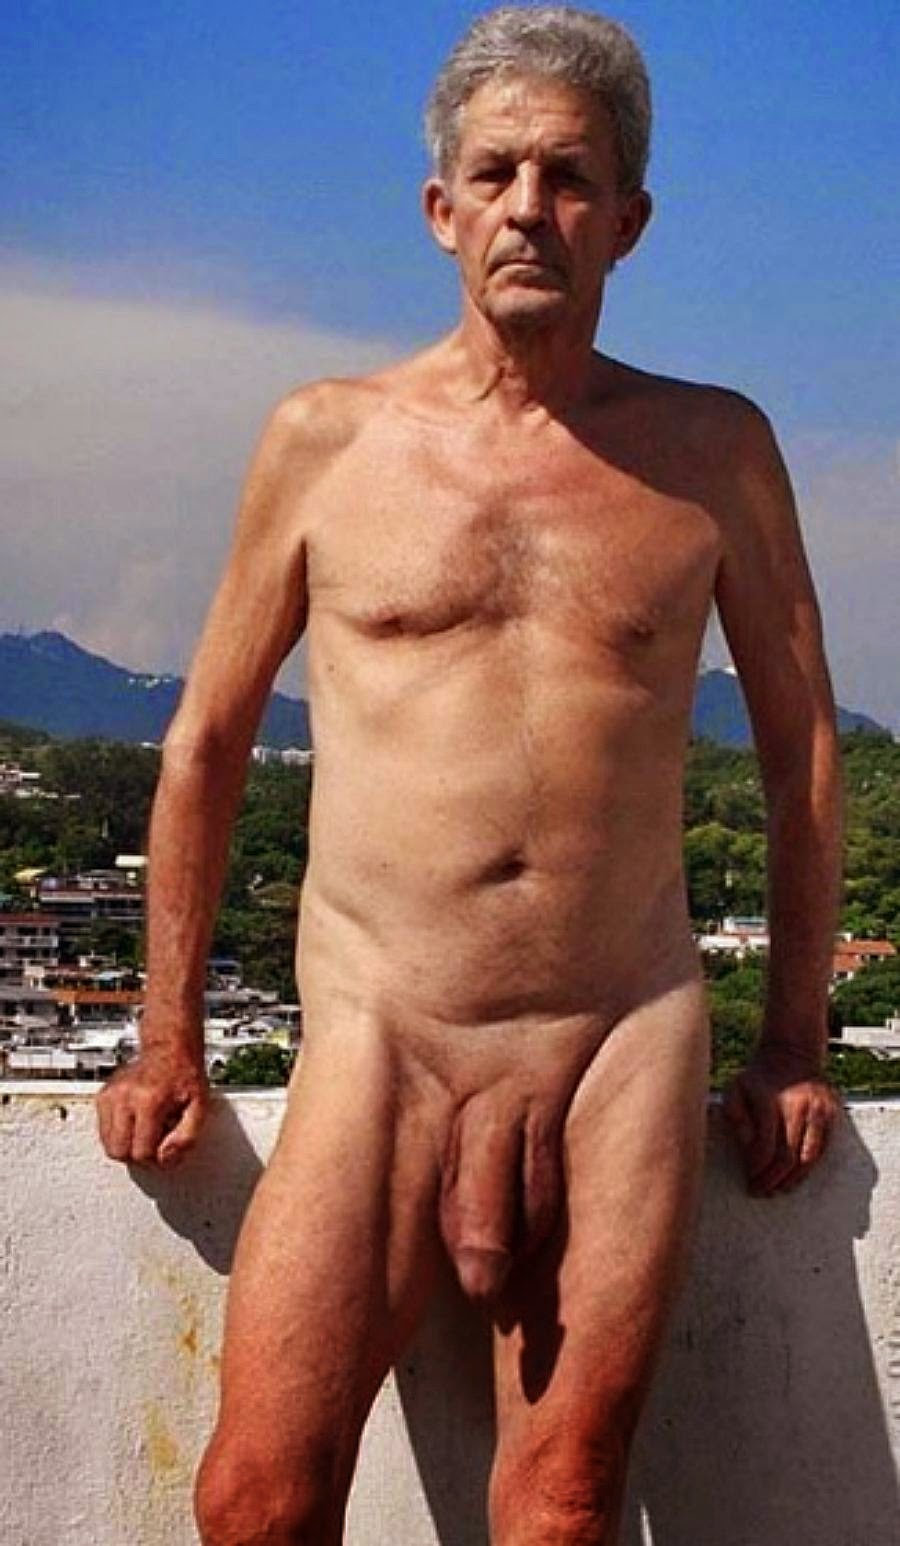 pics of naked grandpas